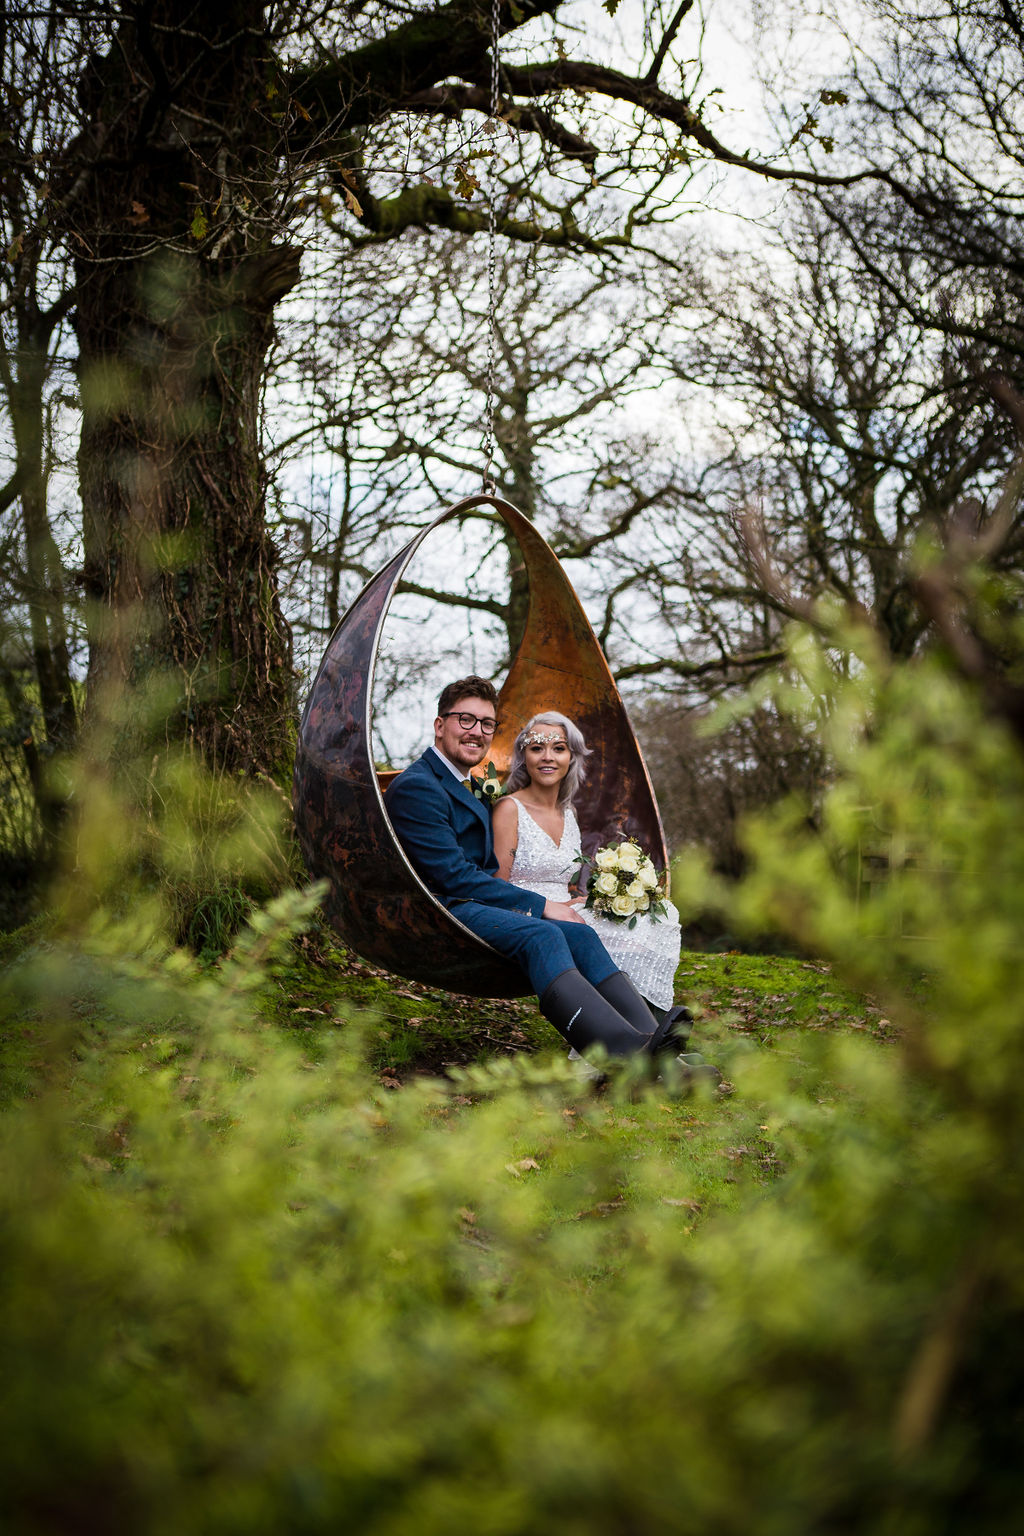 bride and groom in swing - winter elopement - simple wedding - pandemic wedding - small wedding - unconventional wedding